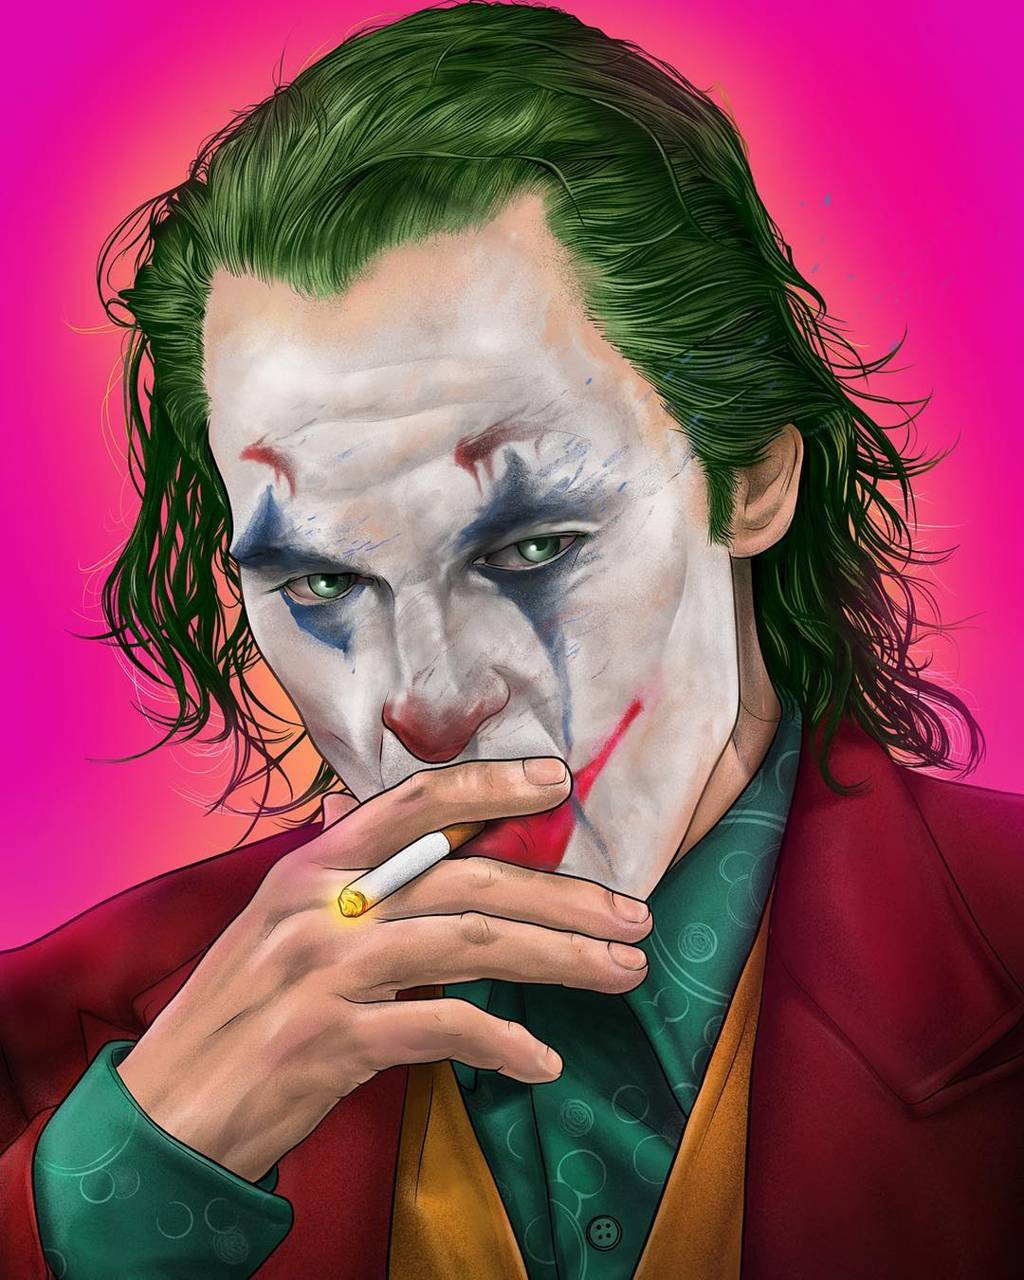 Joker Smoking 2019 Wallpaper